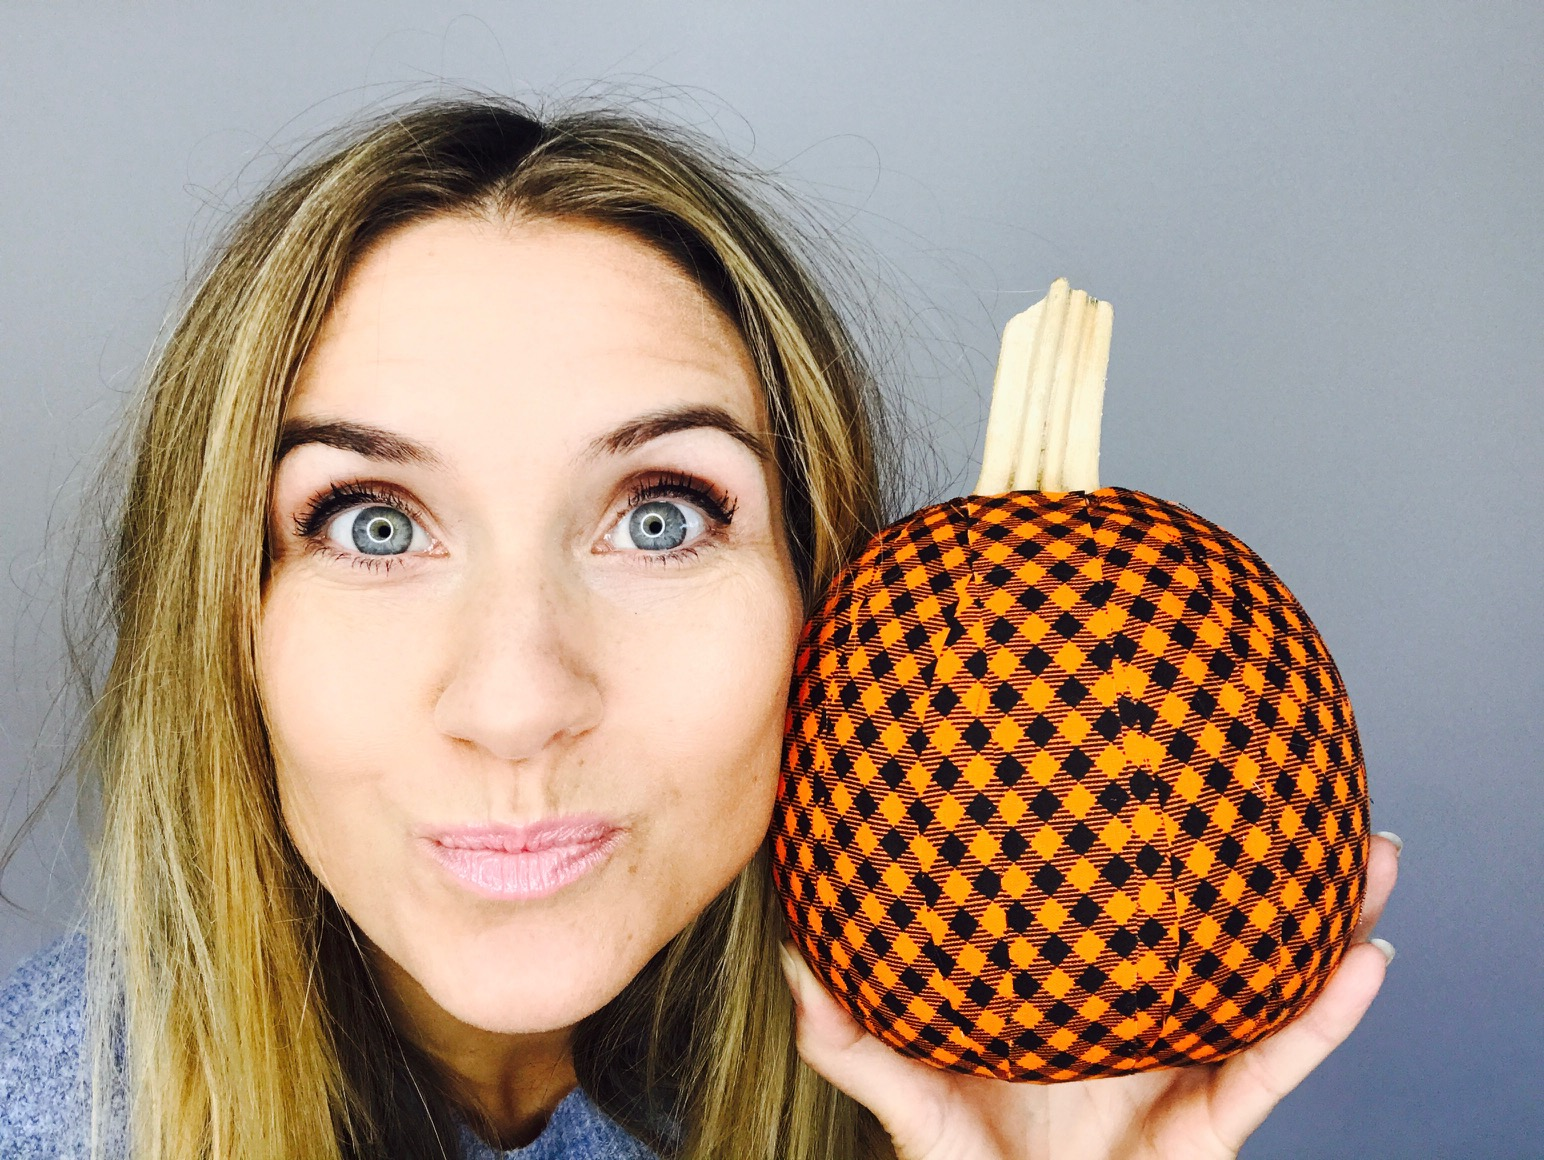 Woah. Extreme close-up. My point here is to show you the relative size of this pumpkin! From start to finish, it took me about 30 mins to create this draped pumpkin!